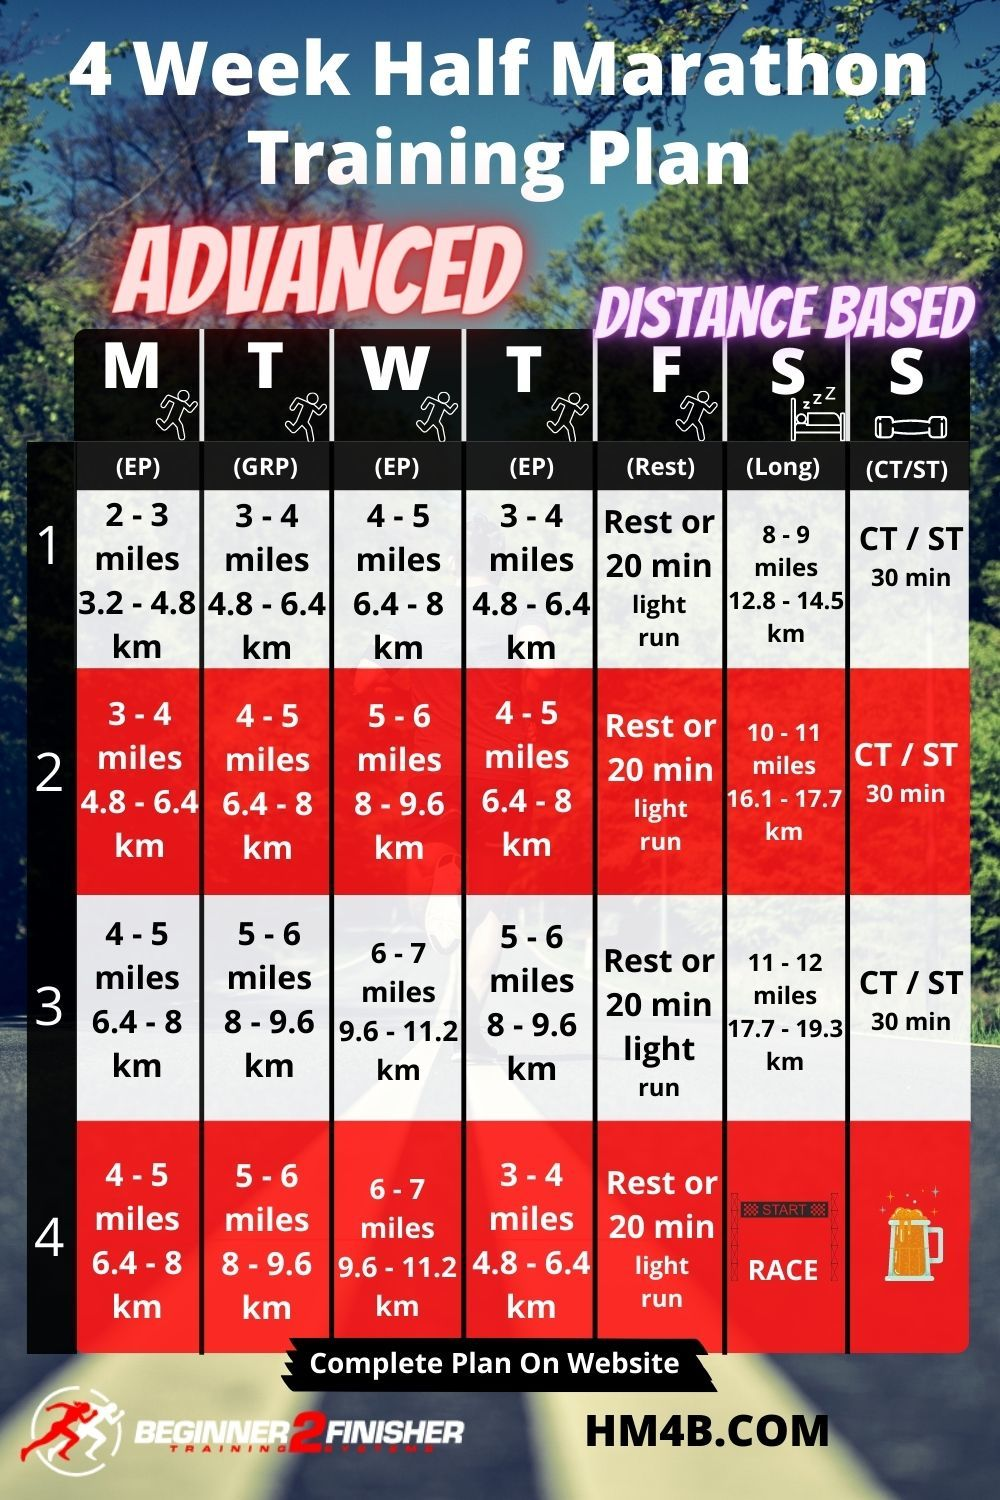 4 Week Half Marathon Training Schedule - Advanced - Distance Based